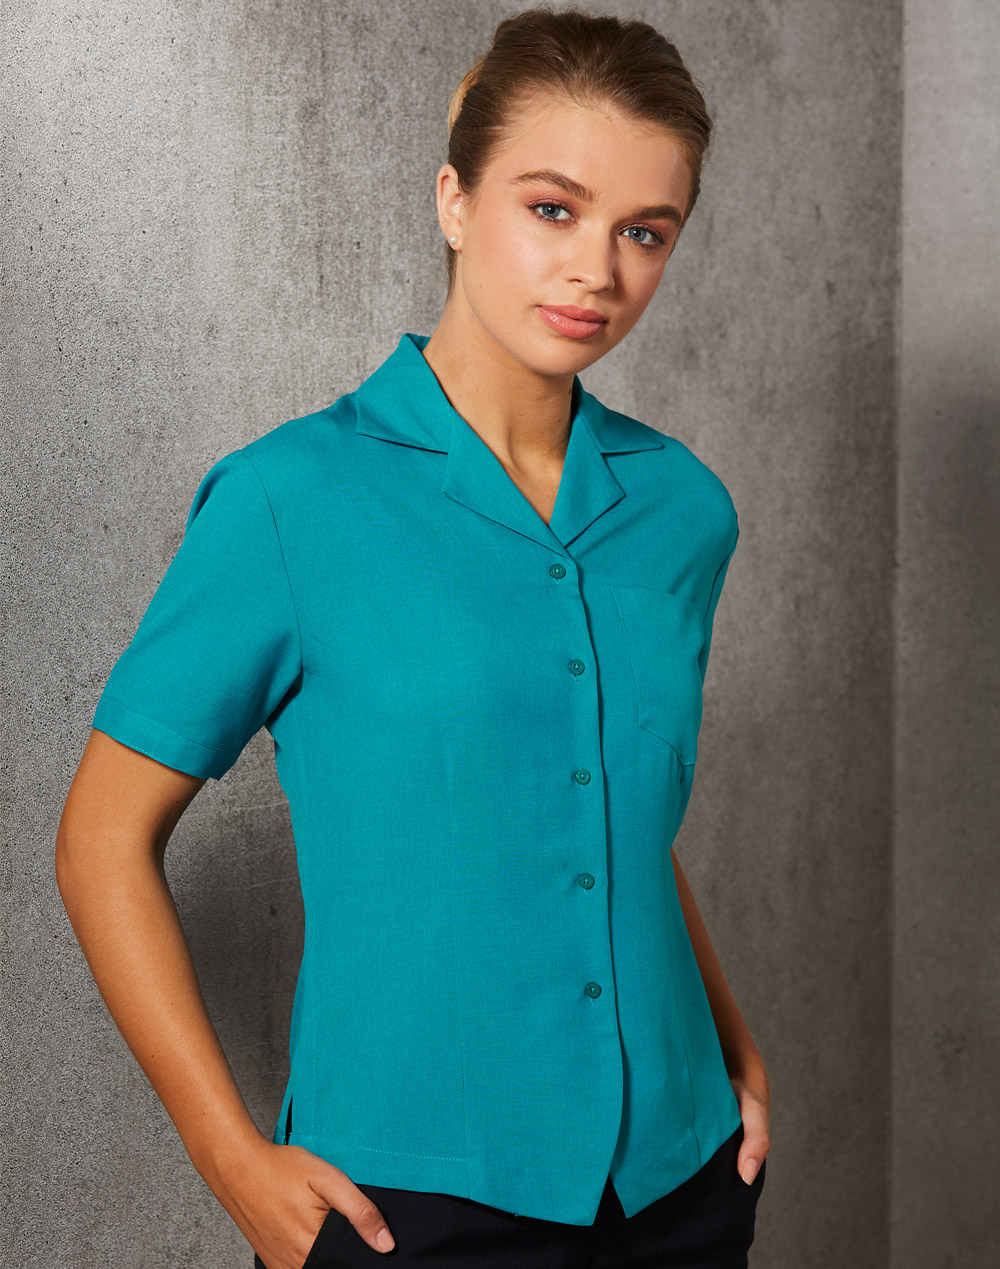 M8614S Women's CoolDry Short Sleeve Overblouse